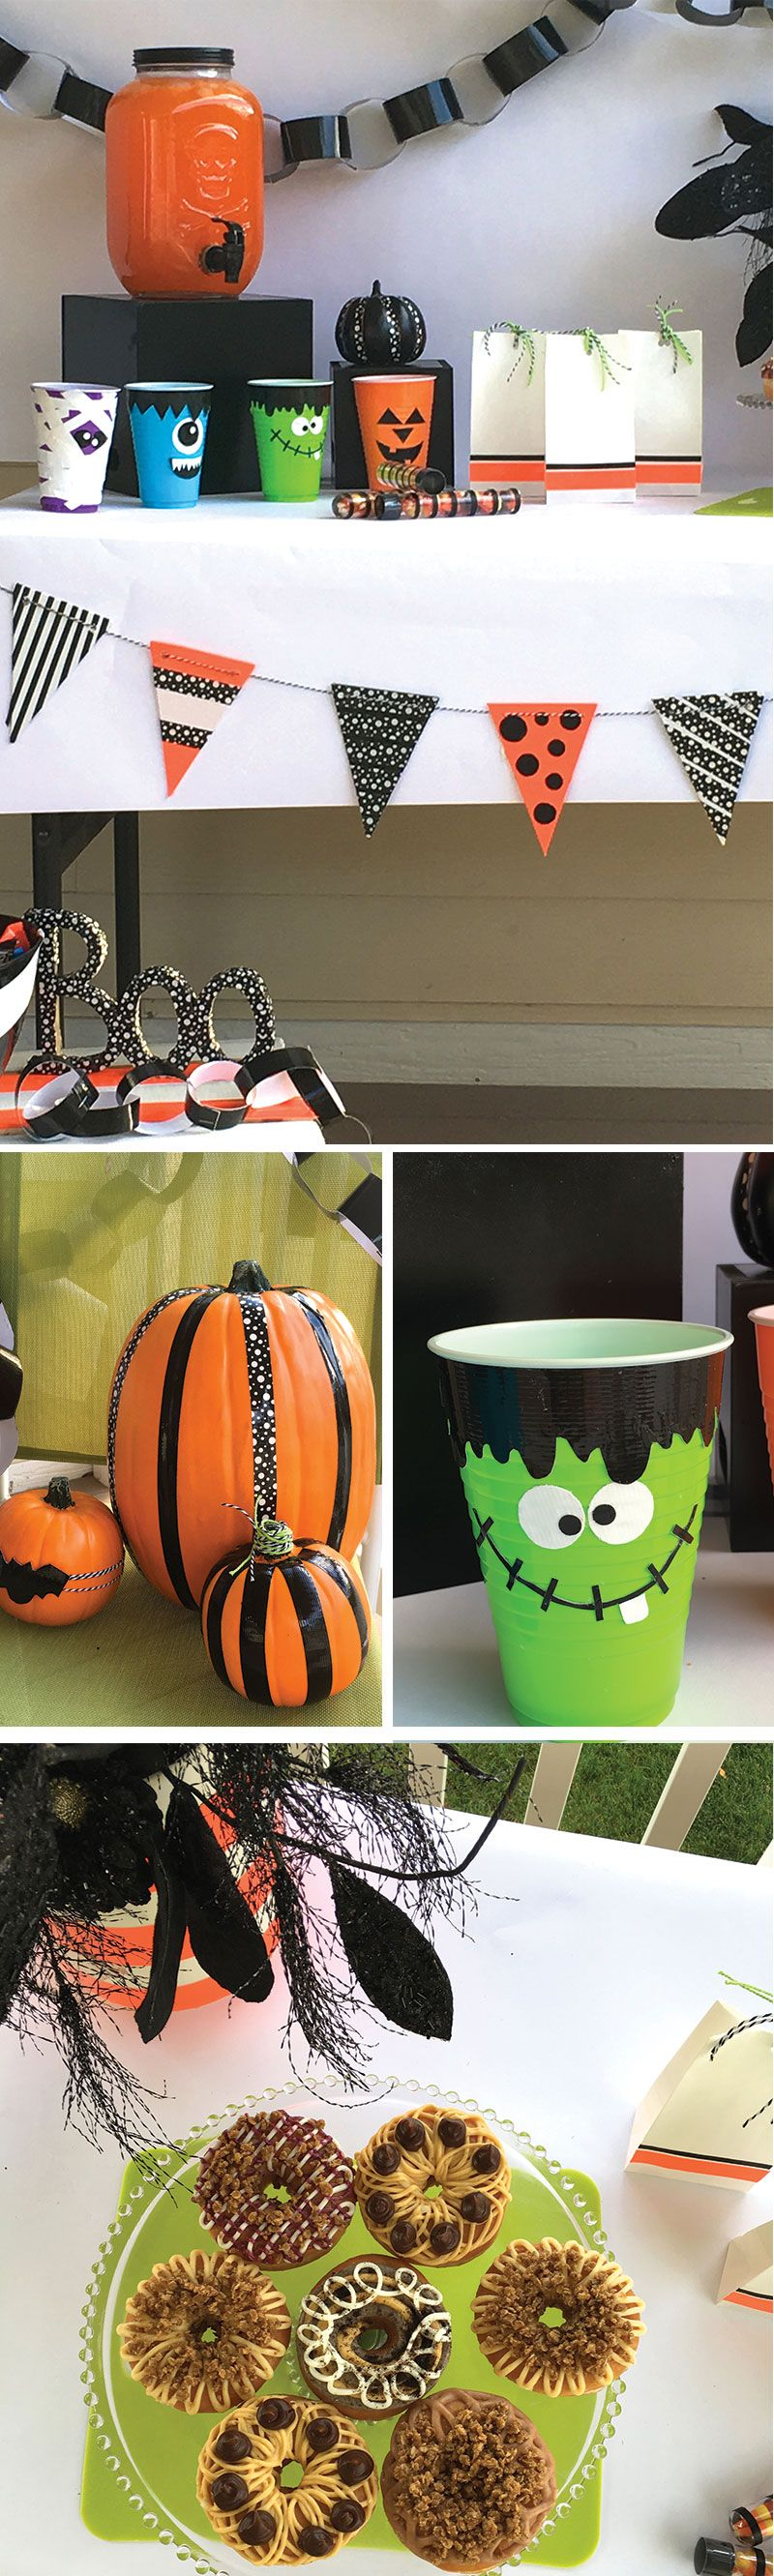 5 Simple Ways to Decorate for your Halloween Party